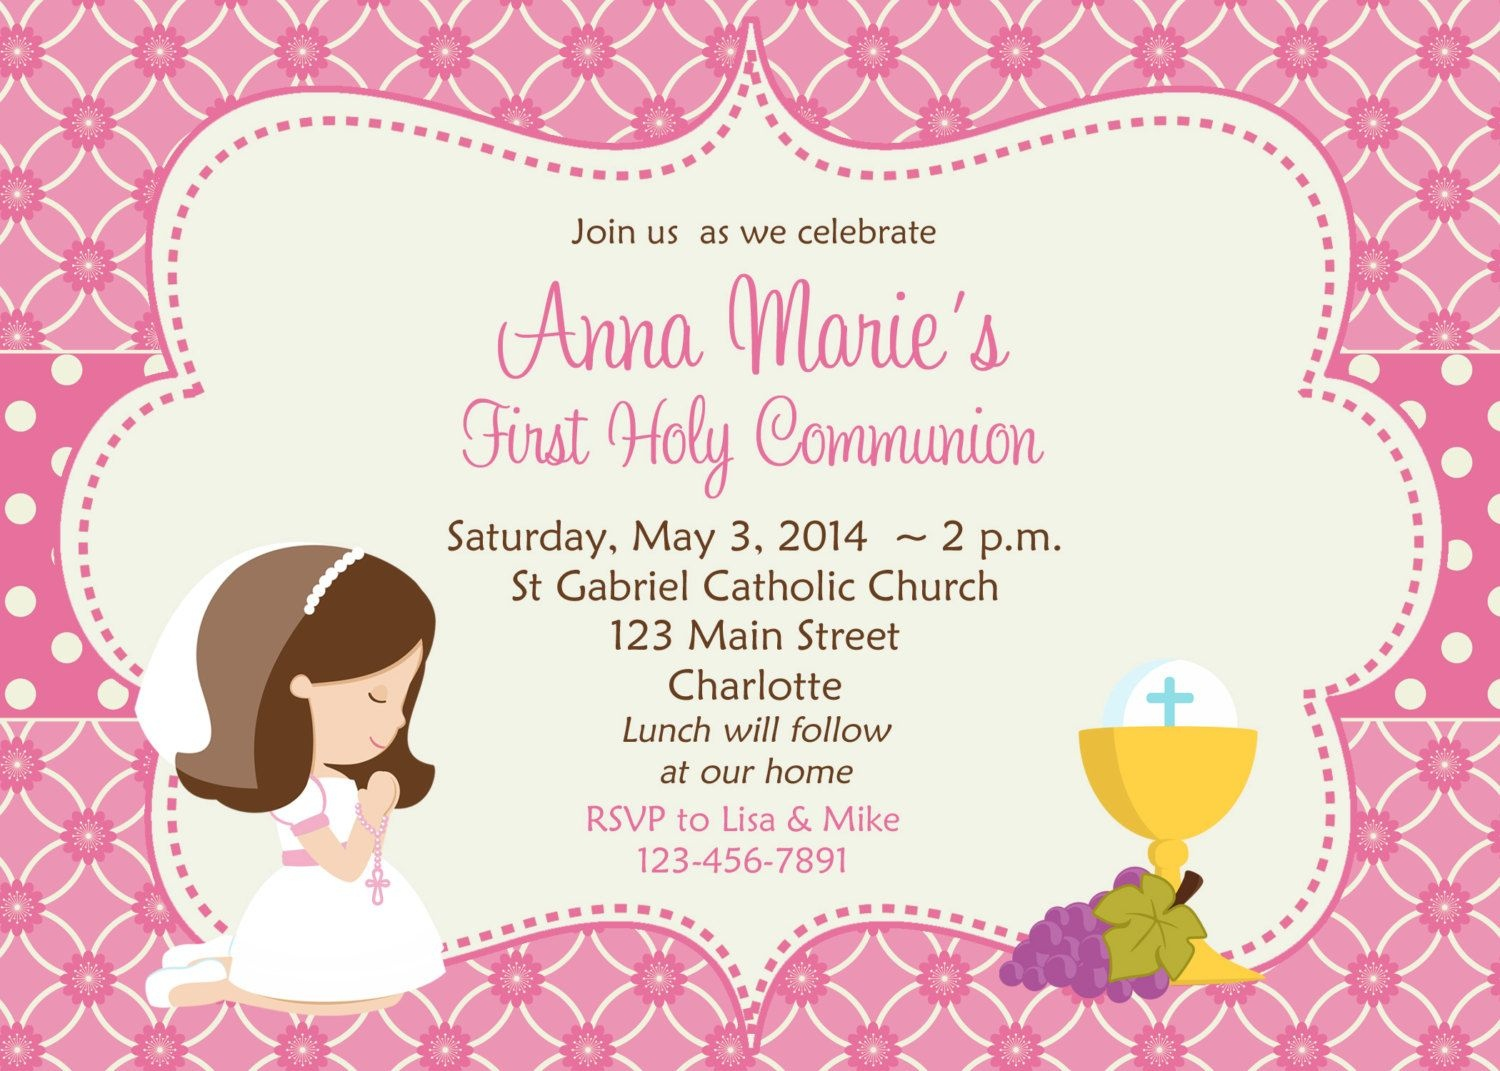 First Holy Communion Invitation Cards Free | Amber's Communion Ideas - Free Printable First Communion Invitation Cards